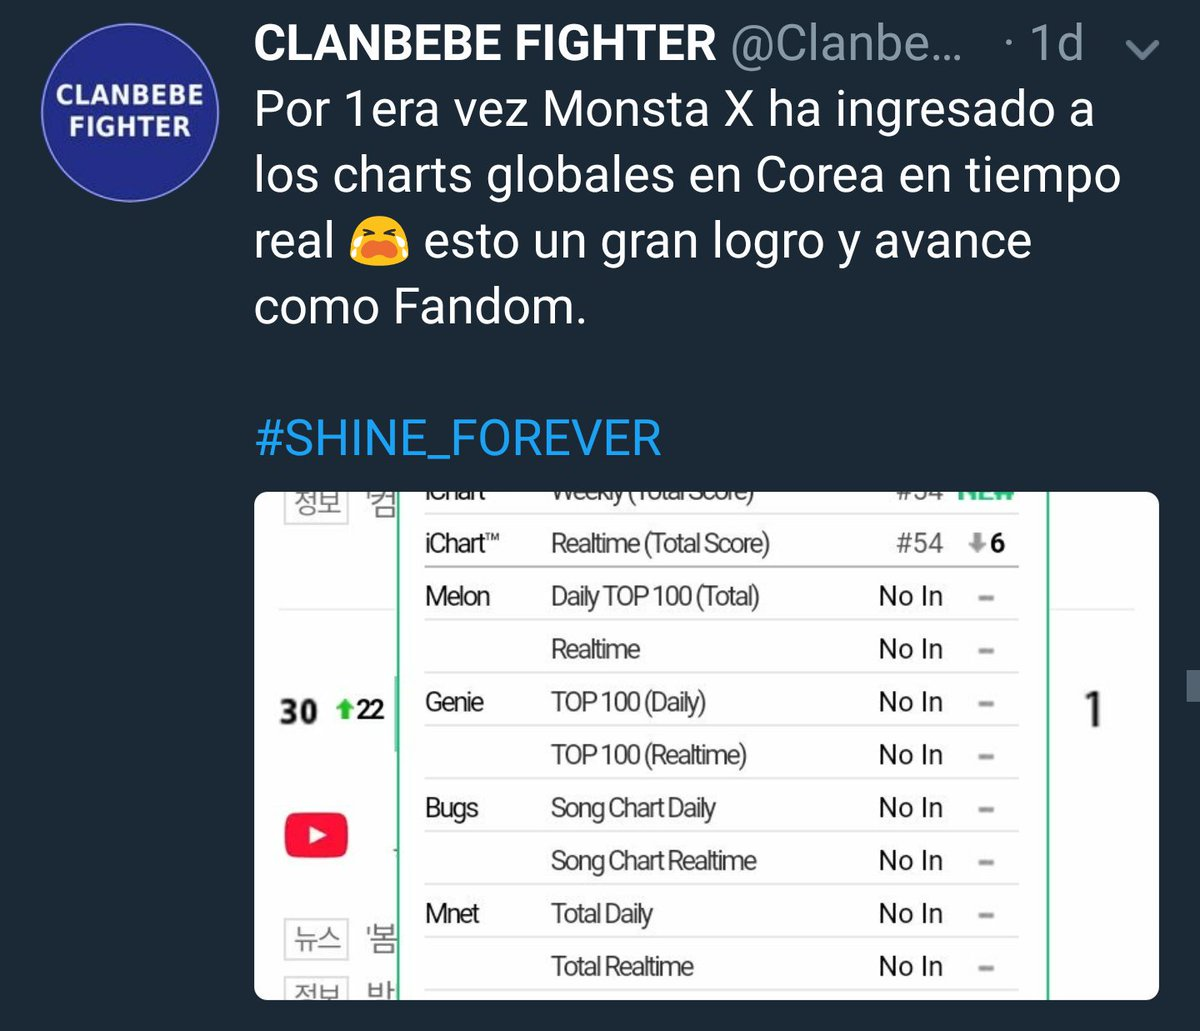 [#MONSTA_X ] has entered for 1st time in Global Charts In Korea. It is very important bc is the 1st time in 2 years.  #SHINE_FOREVER #몬스타엑스<br>http://pic.twitter.com/xHs855gAhK